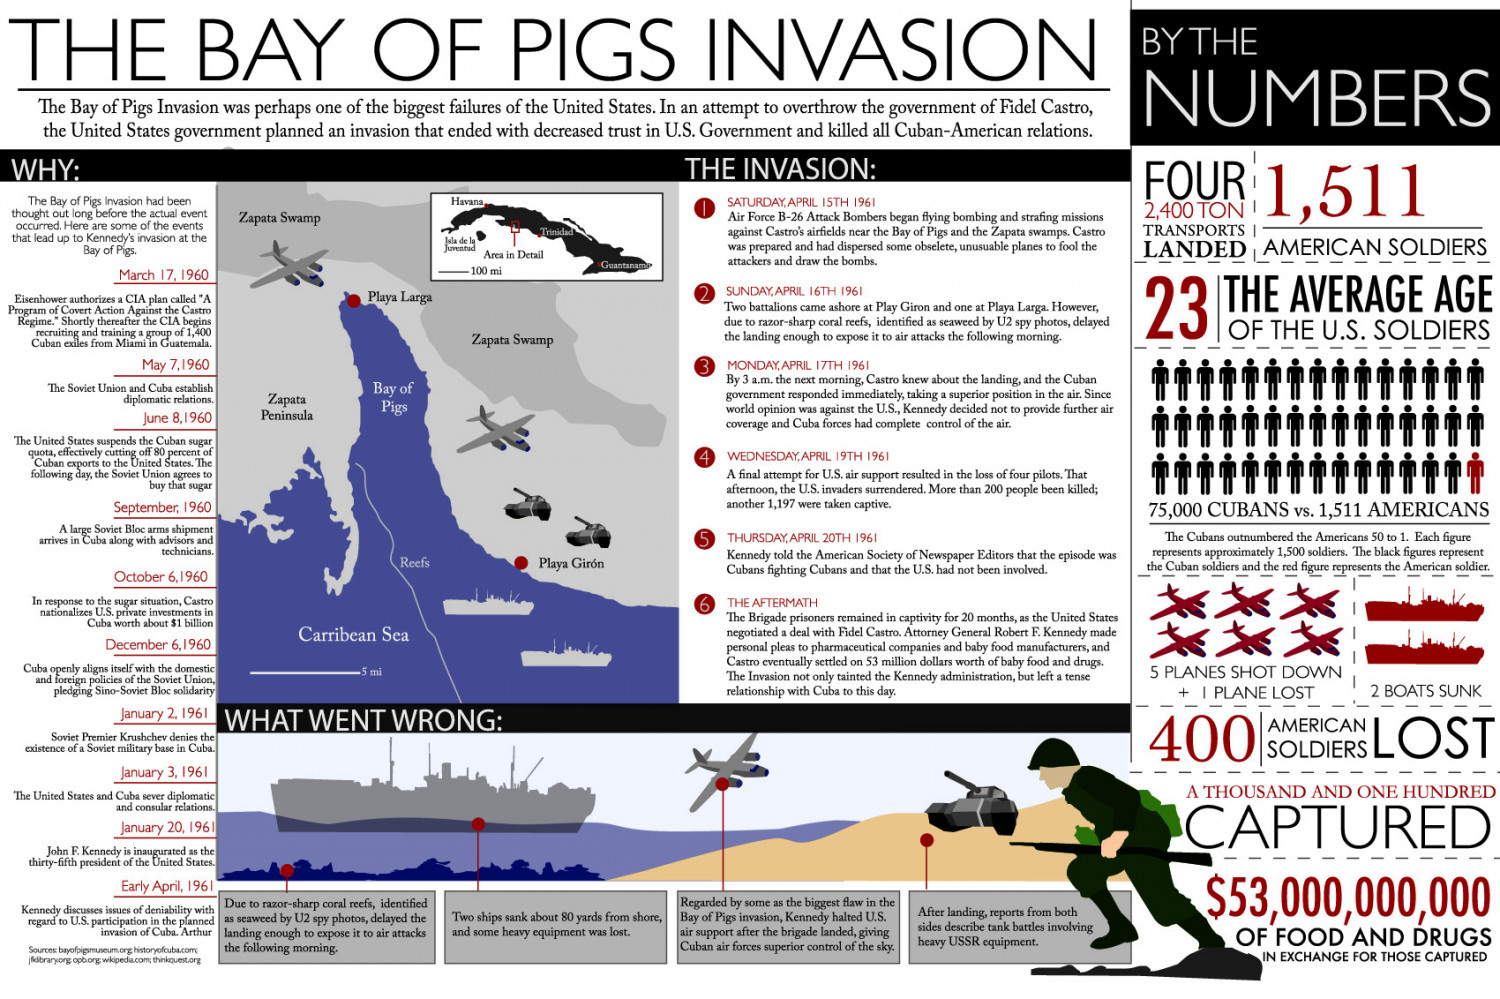 reasons of the failed invasion of cuba at the bay of pigs Planned the bay of pigs invasion which failed miserably  yes the relationship with cuba and america became tense after the bay of pigs.